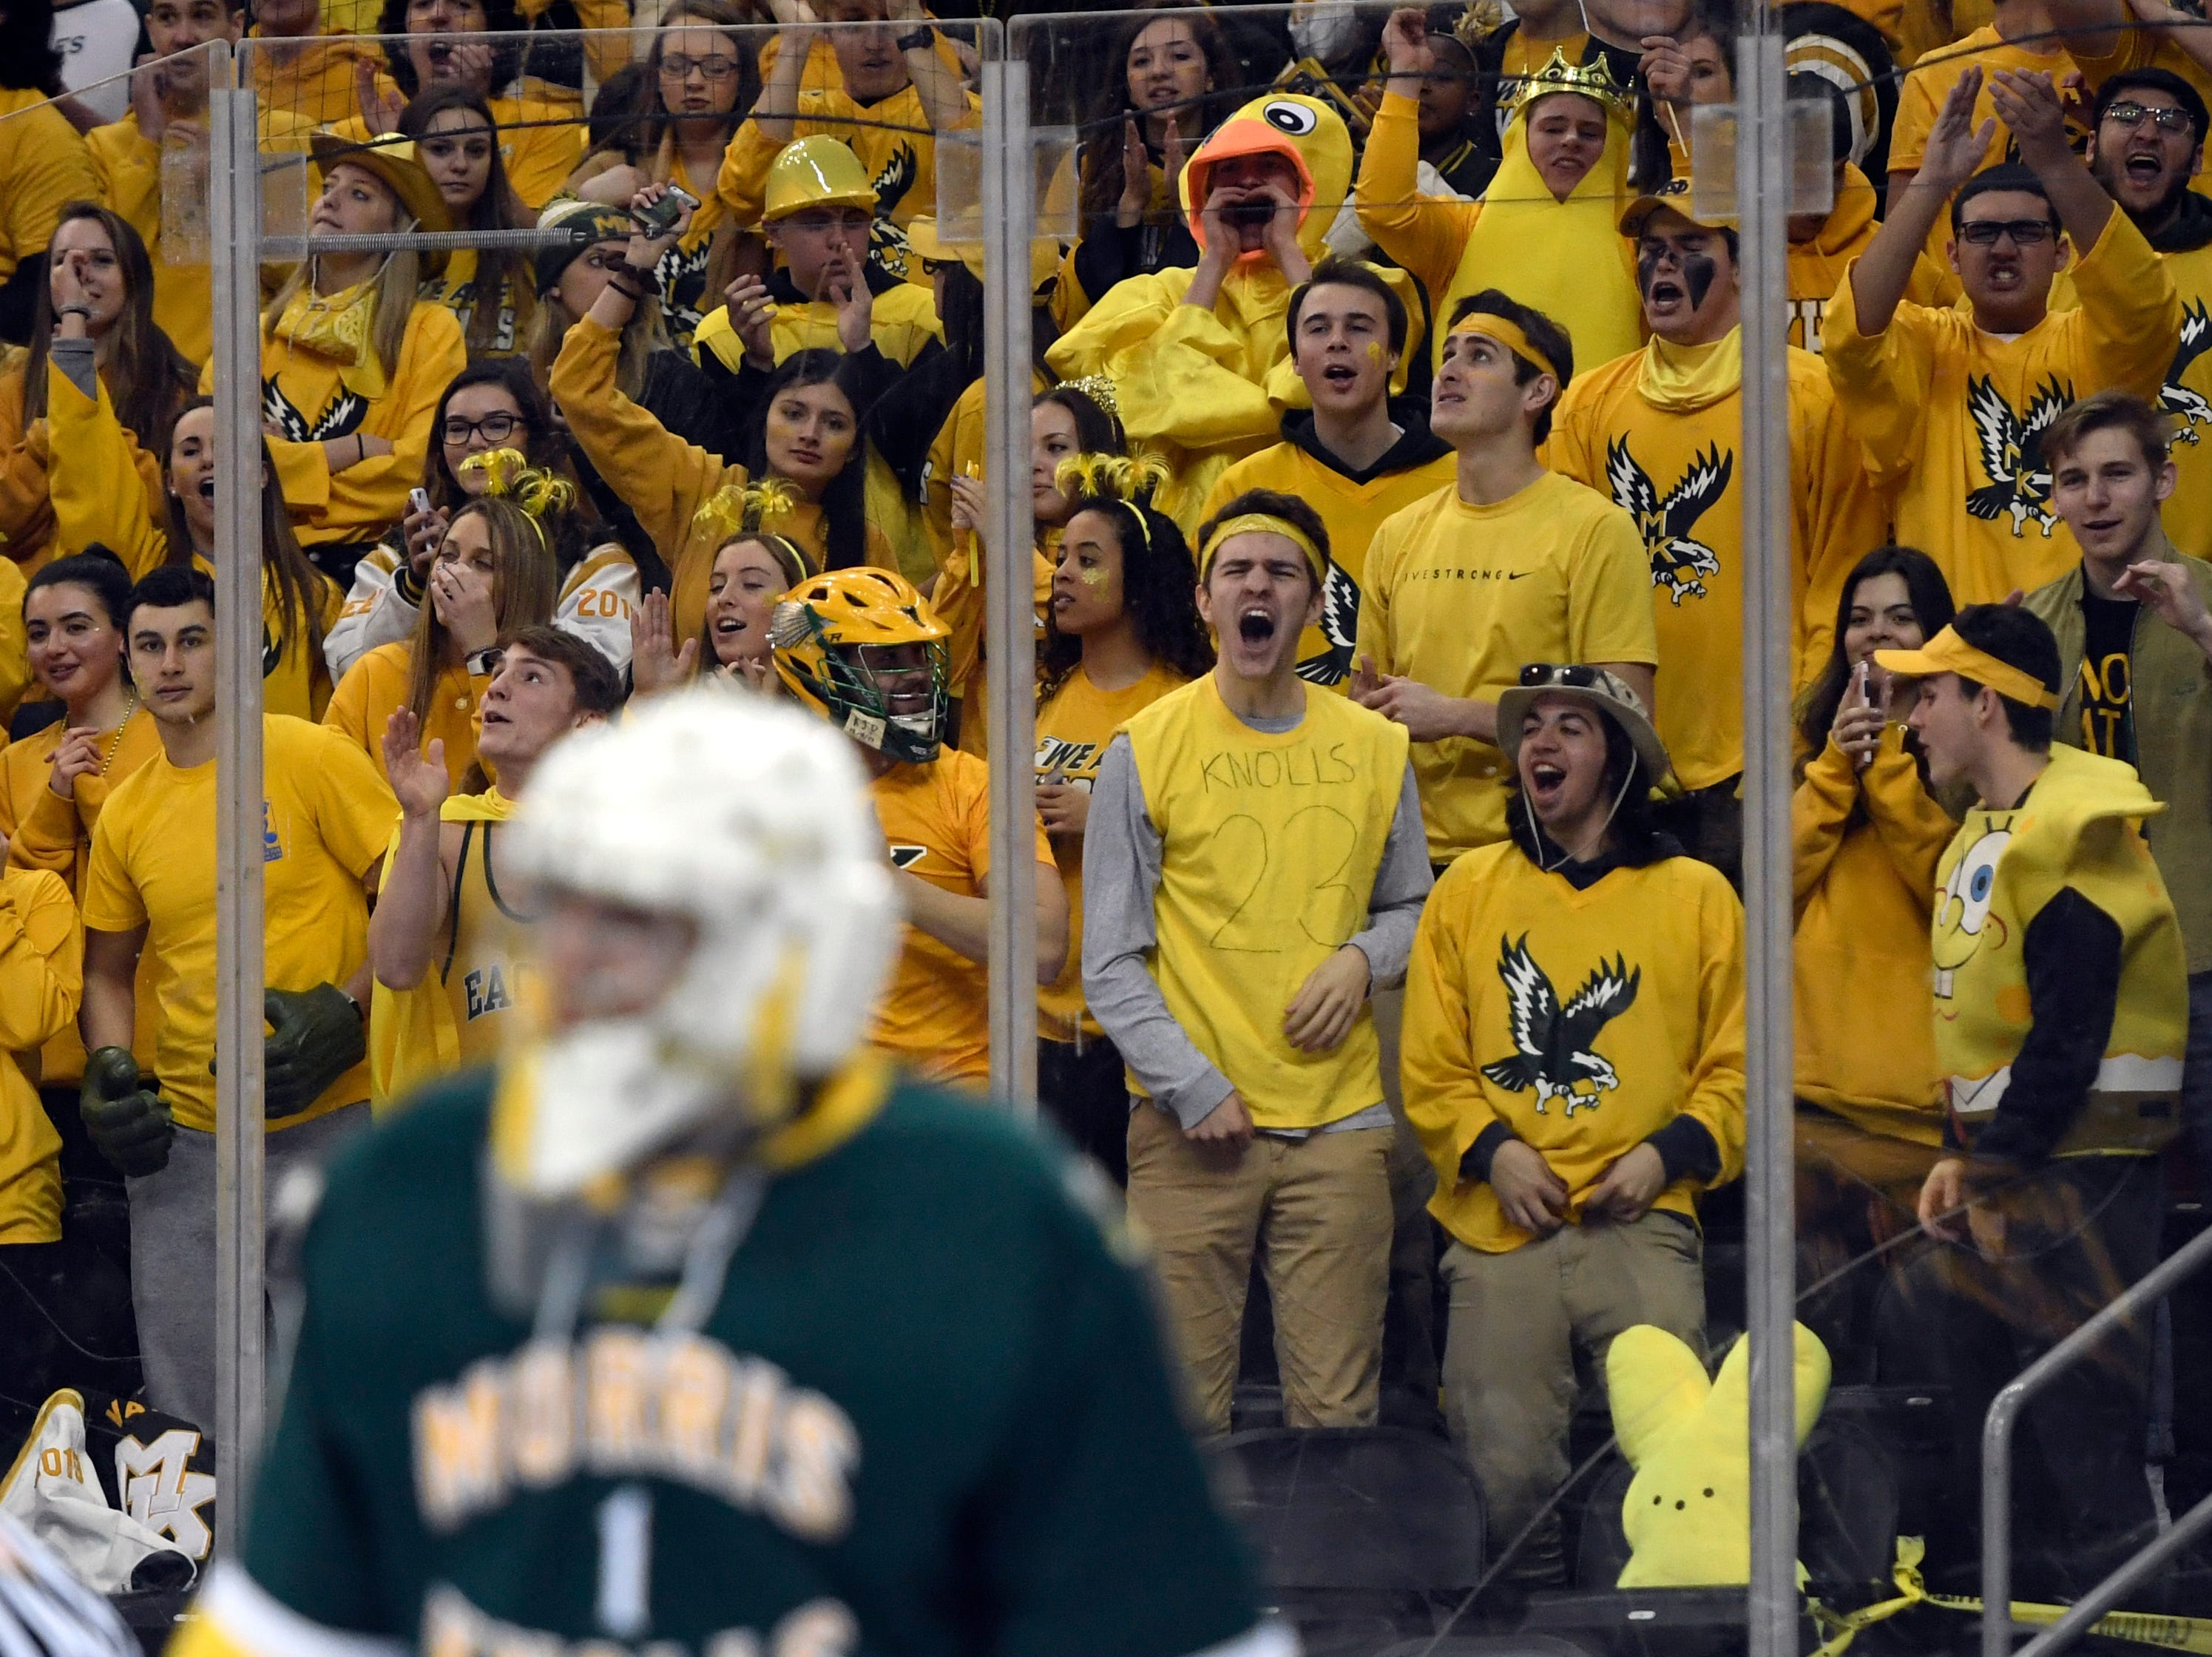 The Morris Knolls/Hills student section cheers for goalie Ty Franchi after a save against Hillsborough in the Public A ice hockey final at the Prudential Center on Monday, March 4, 2019, in Newark.